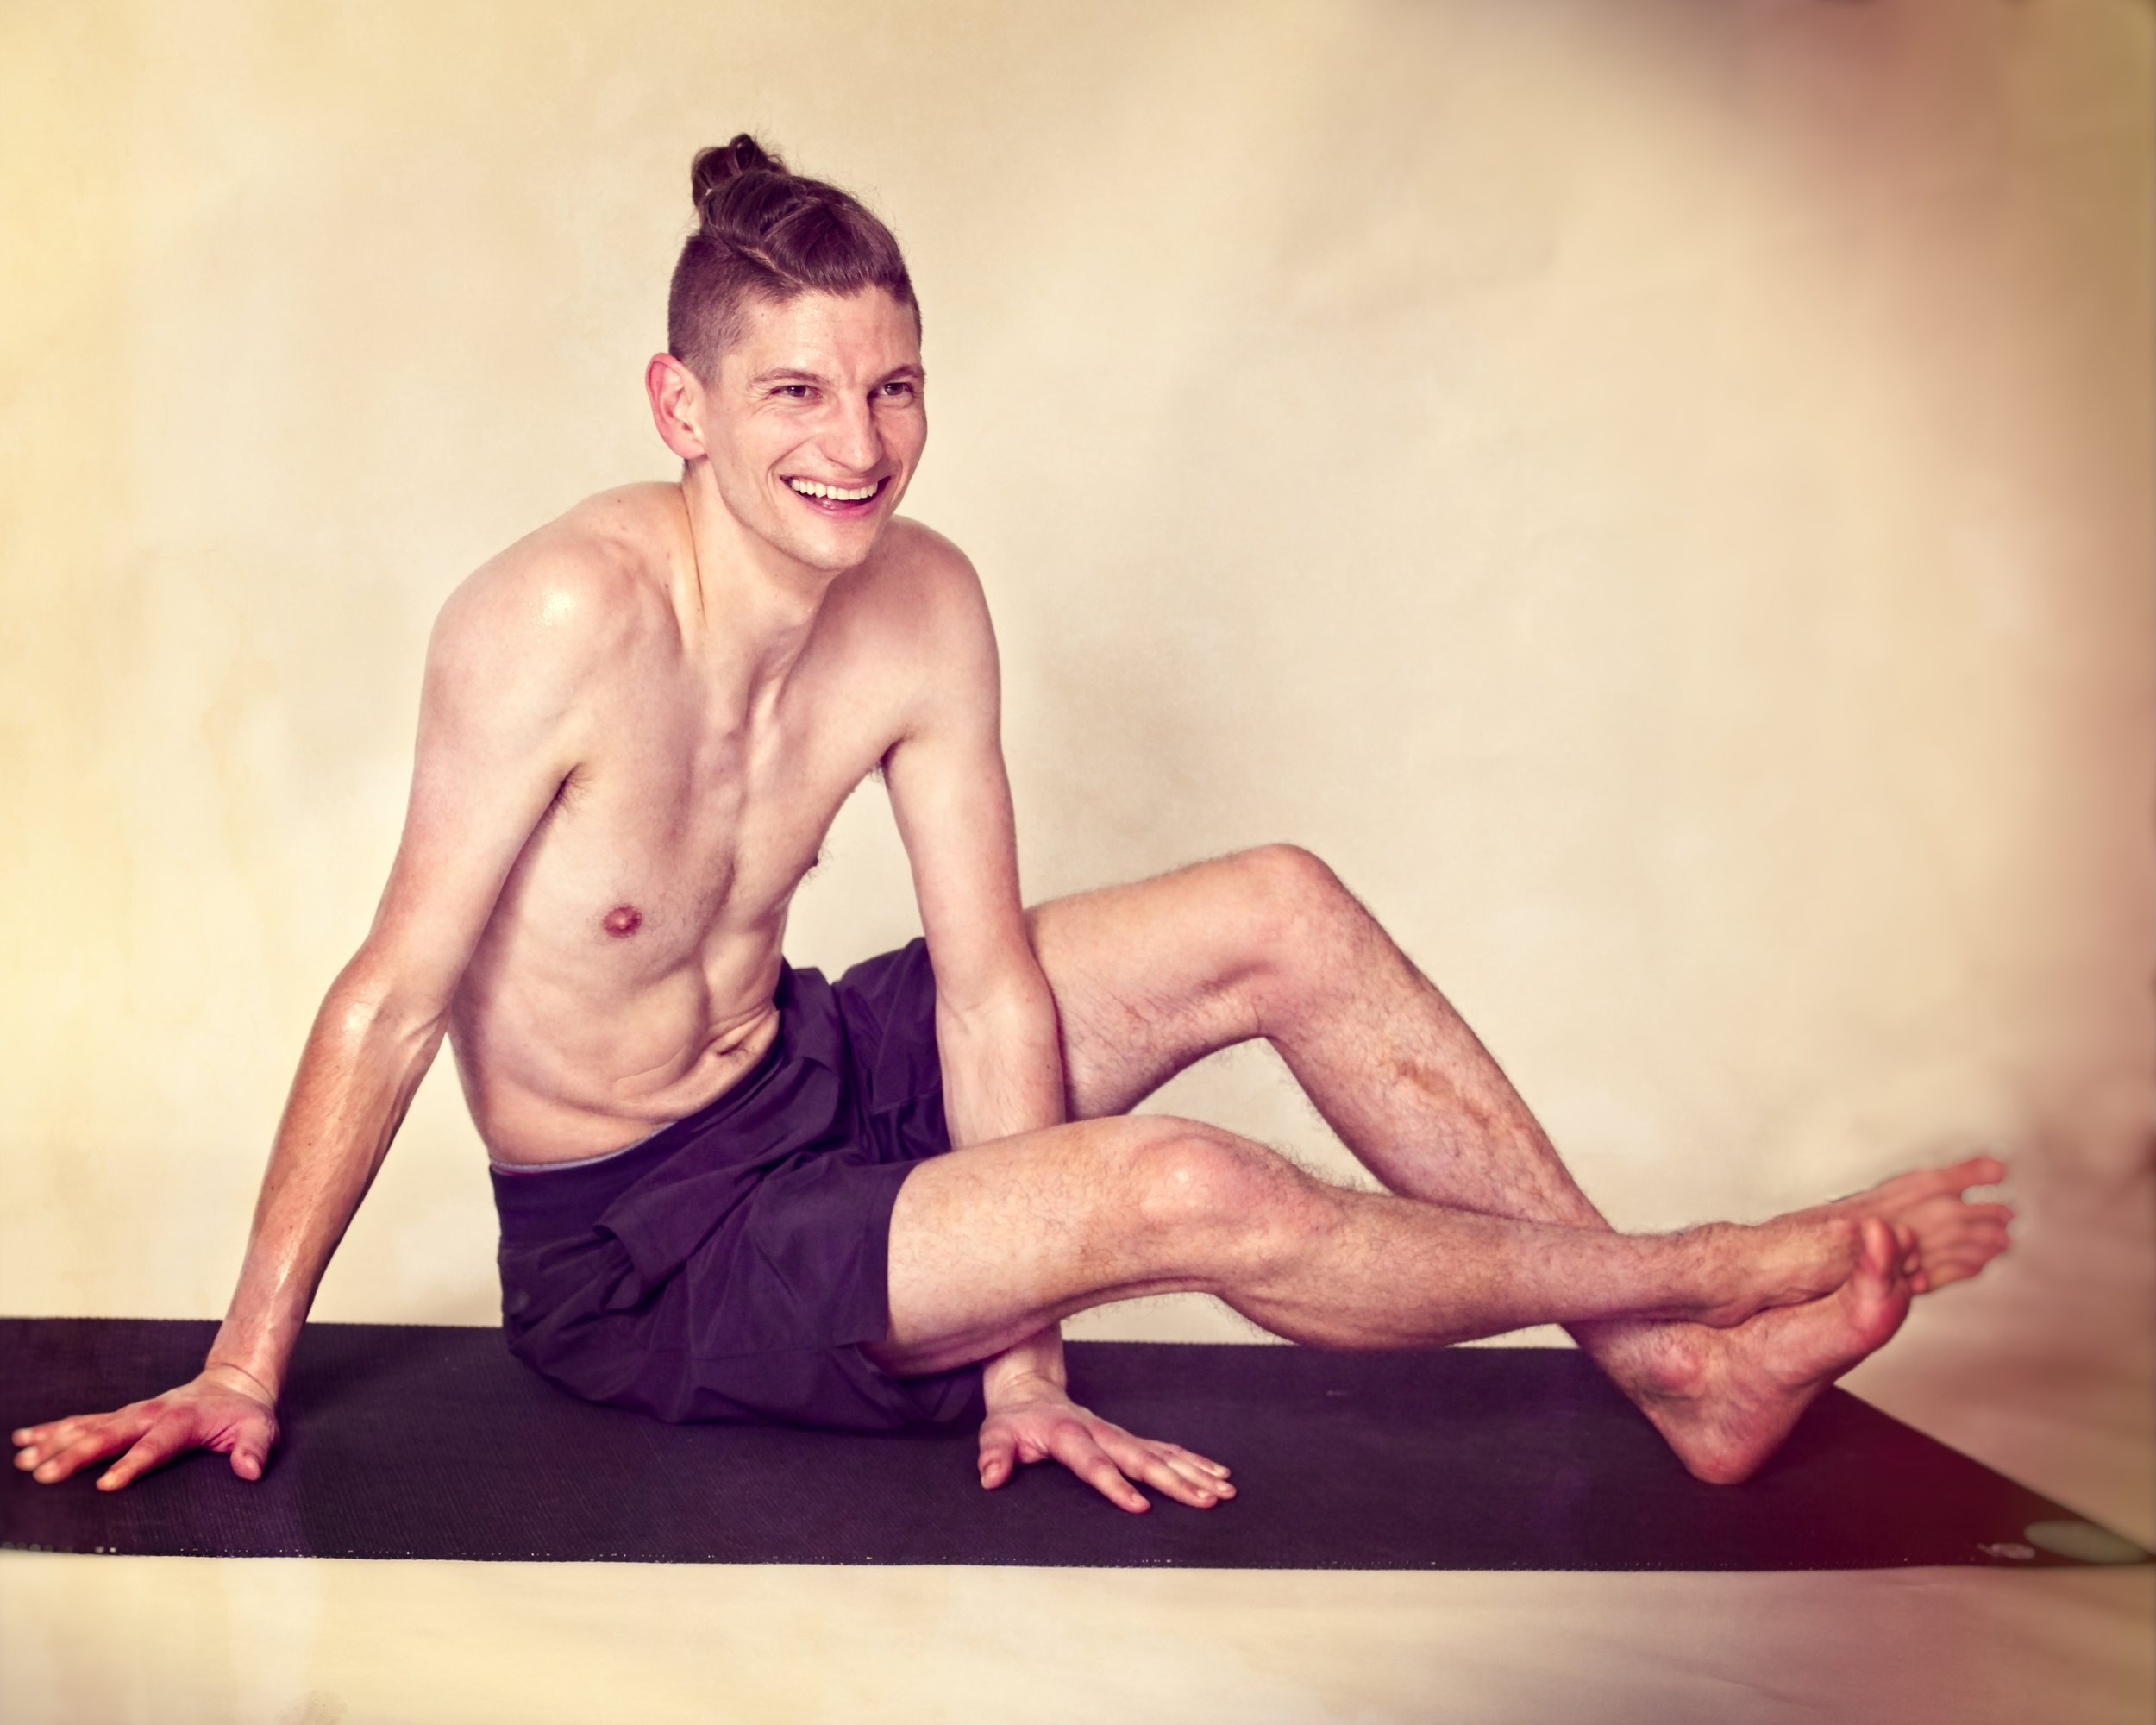 James Seagraves - Prepare to smile and sweat with James Seagraves. A YogaWorks graduate and Iyengar student, James will have you feeling all sorts of strong and mellow after one of his famous afternoon flows.